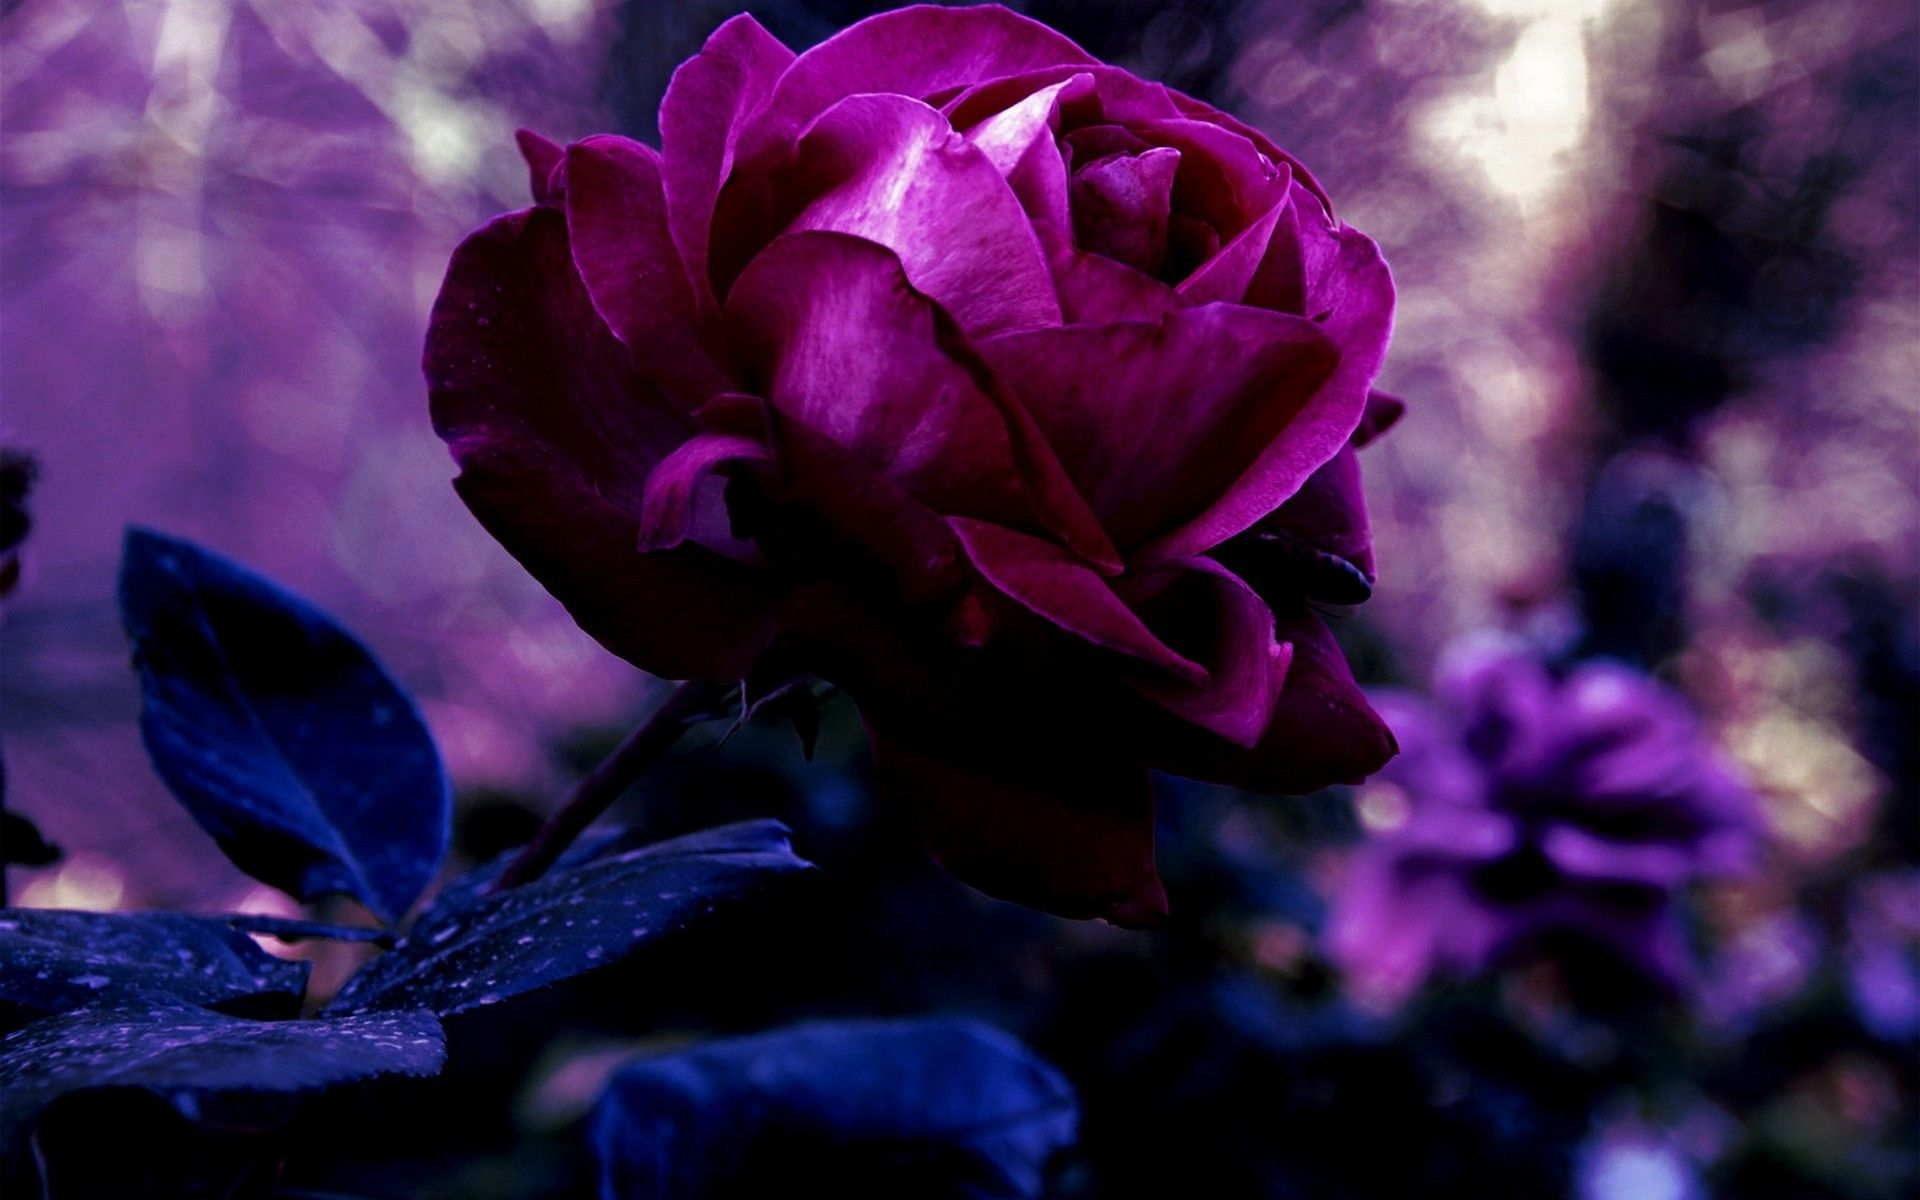 Hd wallpaper rose - Purple And Pink Roses Wallpaper Rose Wallpaper Roses Meaning Dark Deep Blue Pink Rainbow